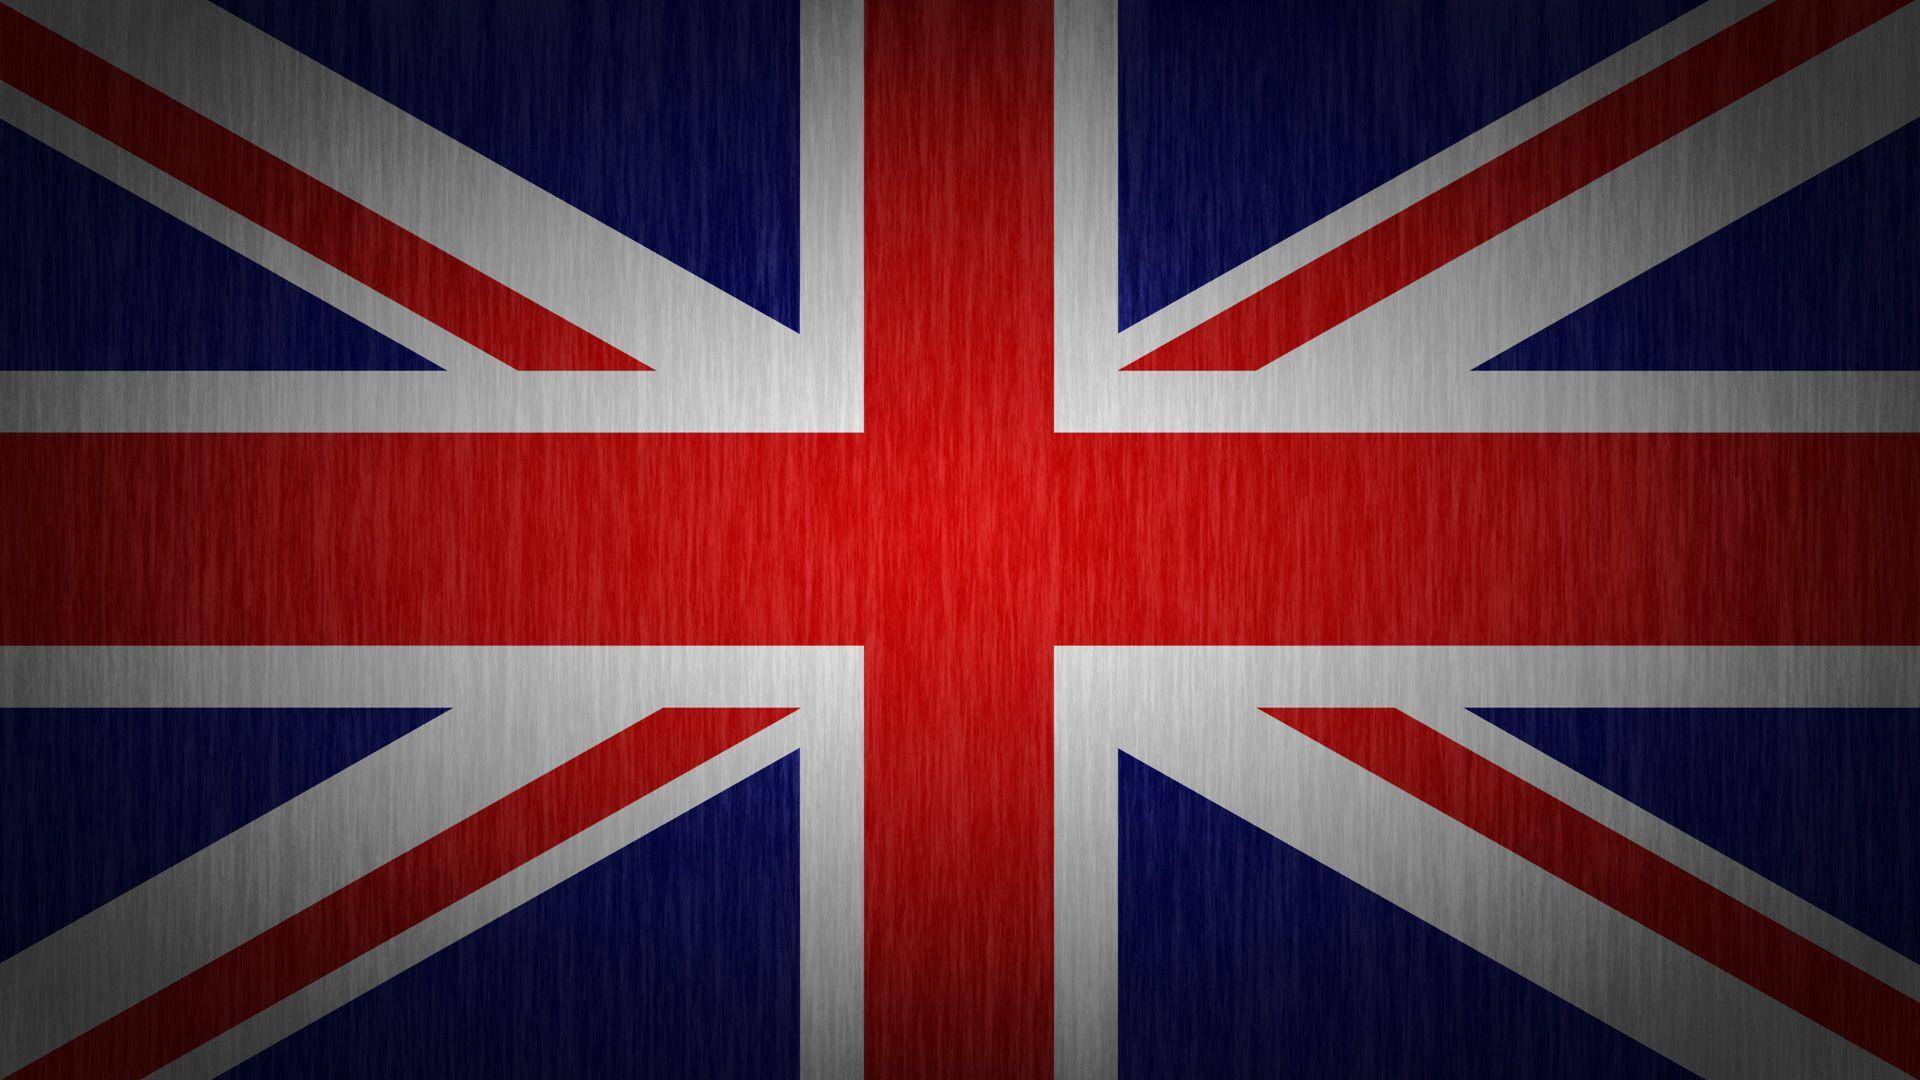 British Flag Wallpapers Top Free British Flag Backgrounds